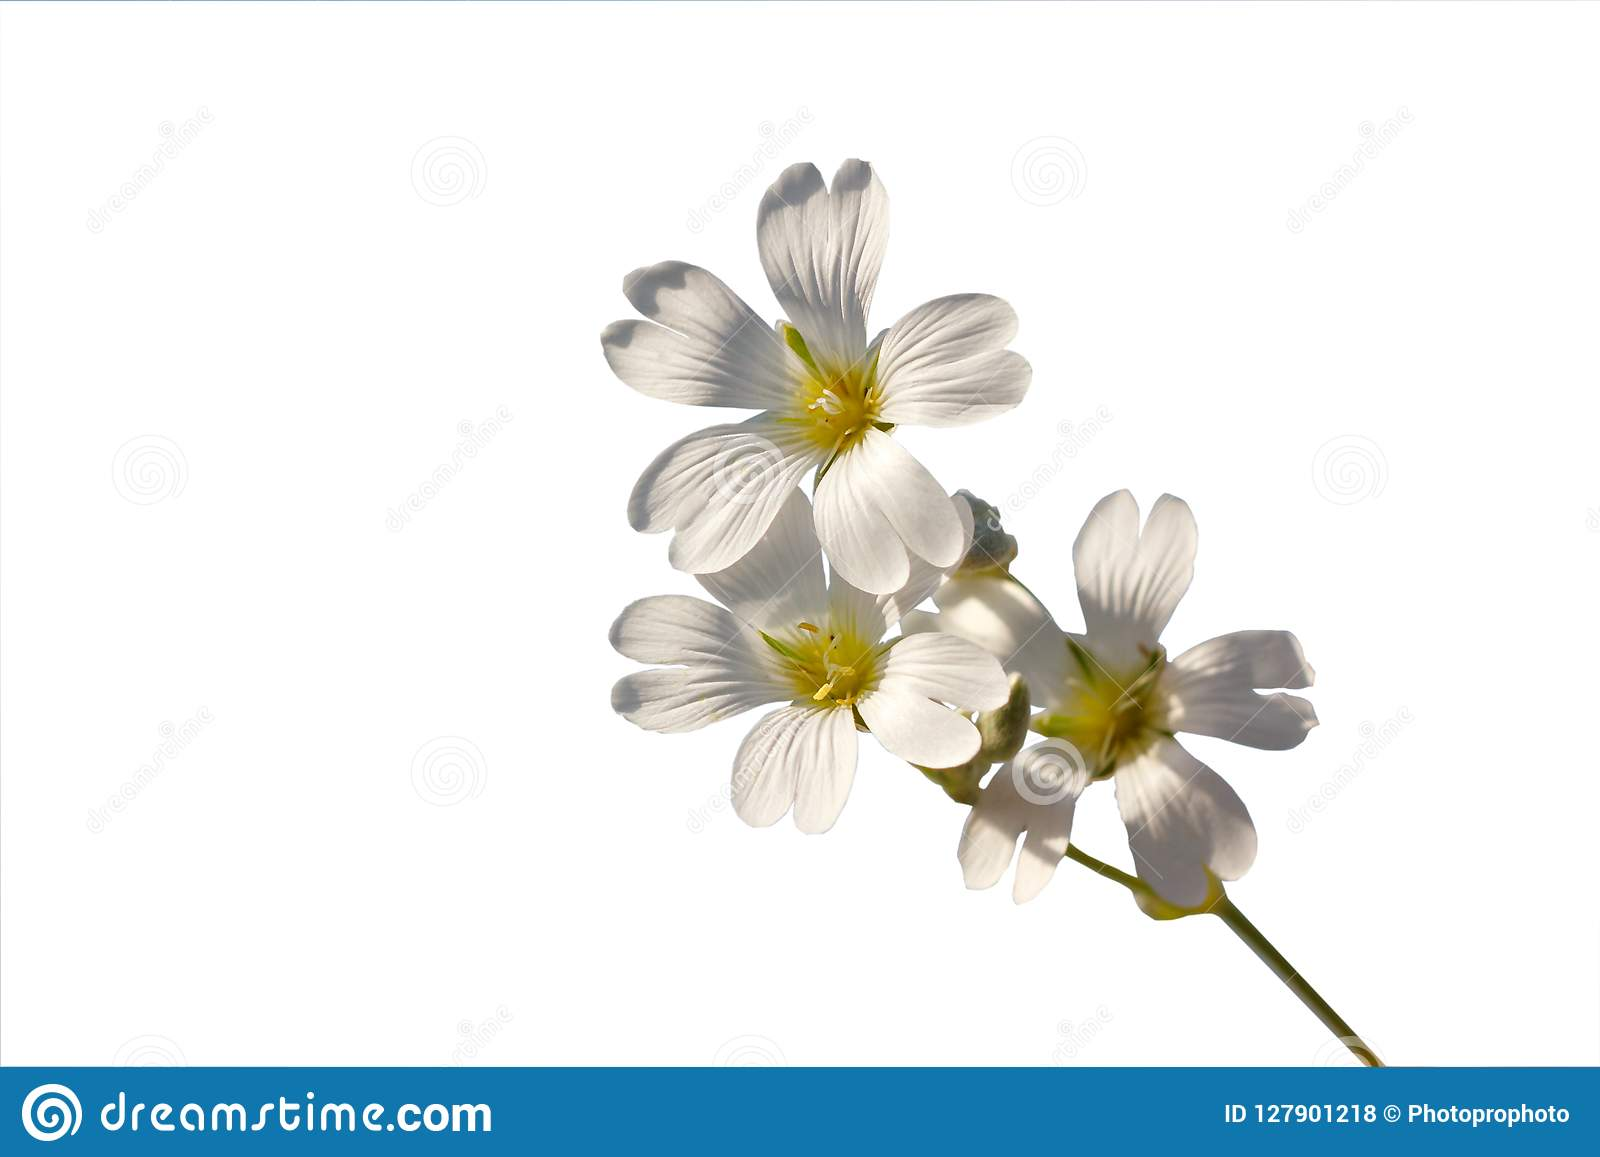 Sprig with white flowers on a white background